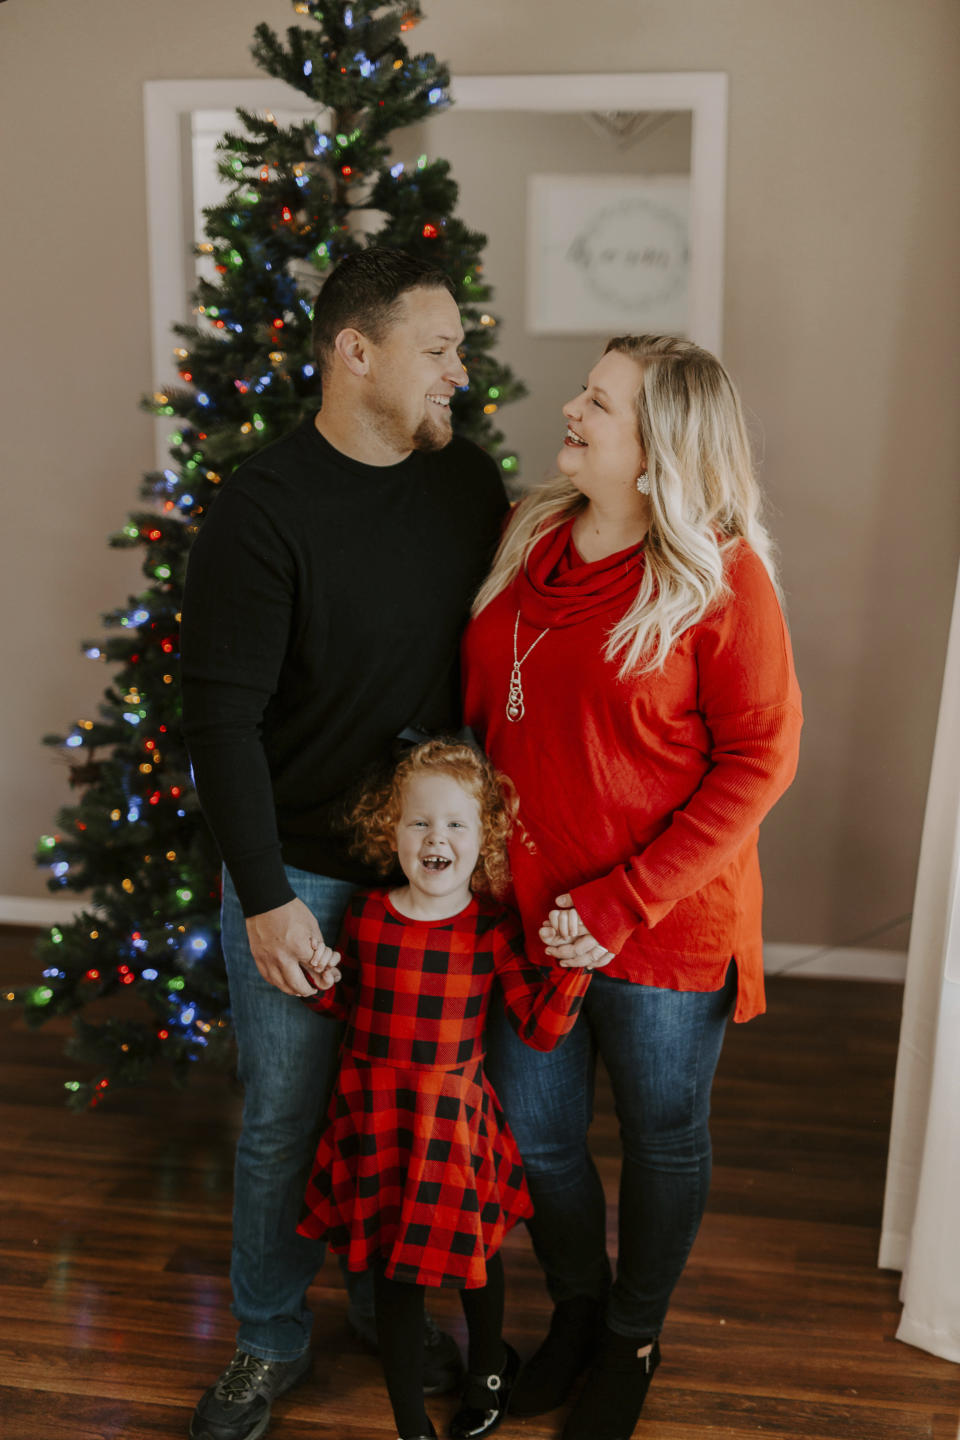 Nick Jones, left, poses with his wife Mindy Jones and their daughter Gracelyn Jones in front of one of their decorated Christmas trees at their home in Louisville, Ky. The Jones family are among a growing number of people who have gone full-on Christmas weeks early. Usually Mindy waits until the Saturday after Thanksgiving to jump start the holiday. (Jade Ware via AP)